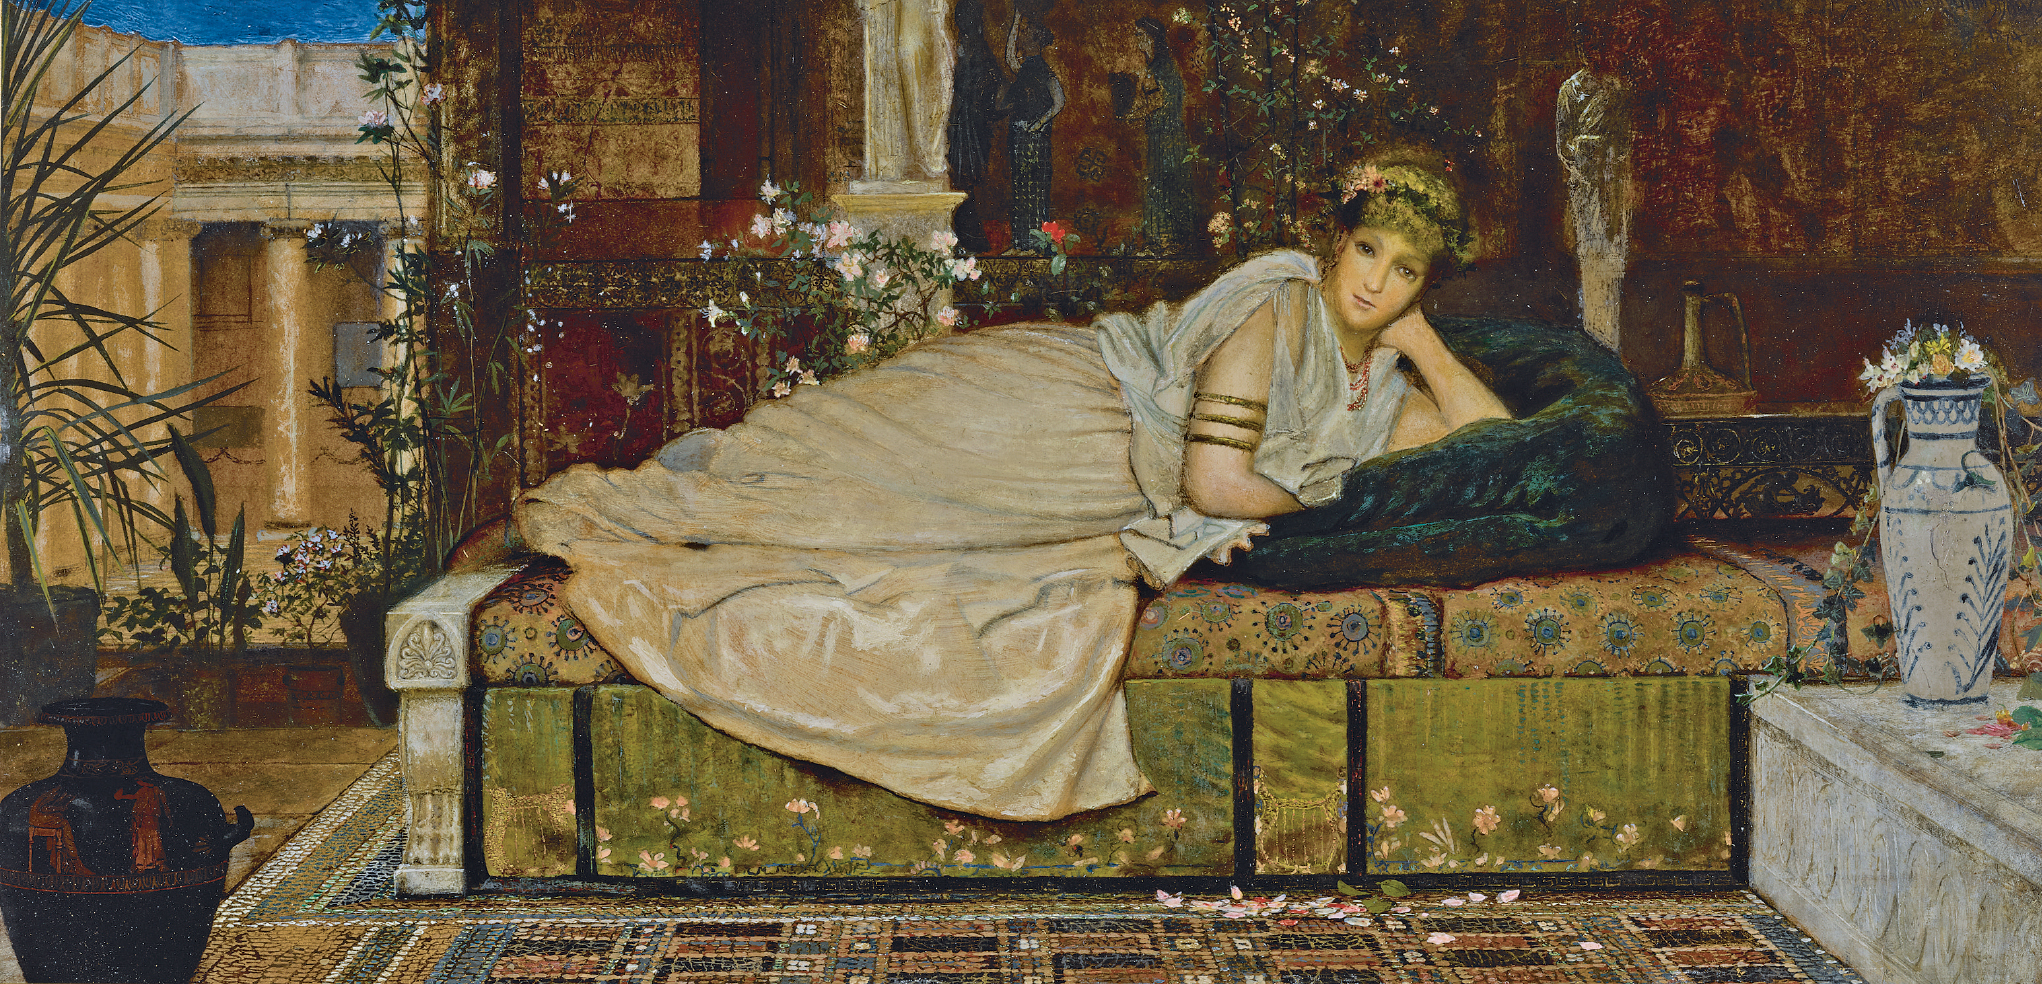 JOHN ATKINSON GRIMSHAW   A Lady in a Classical Interior